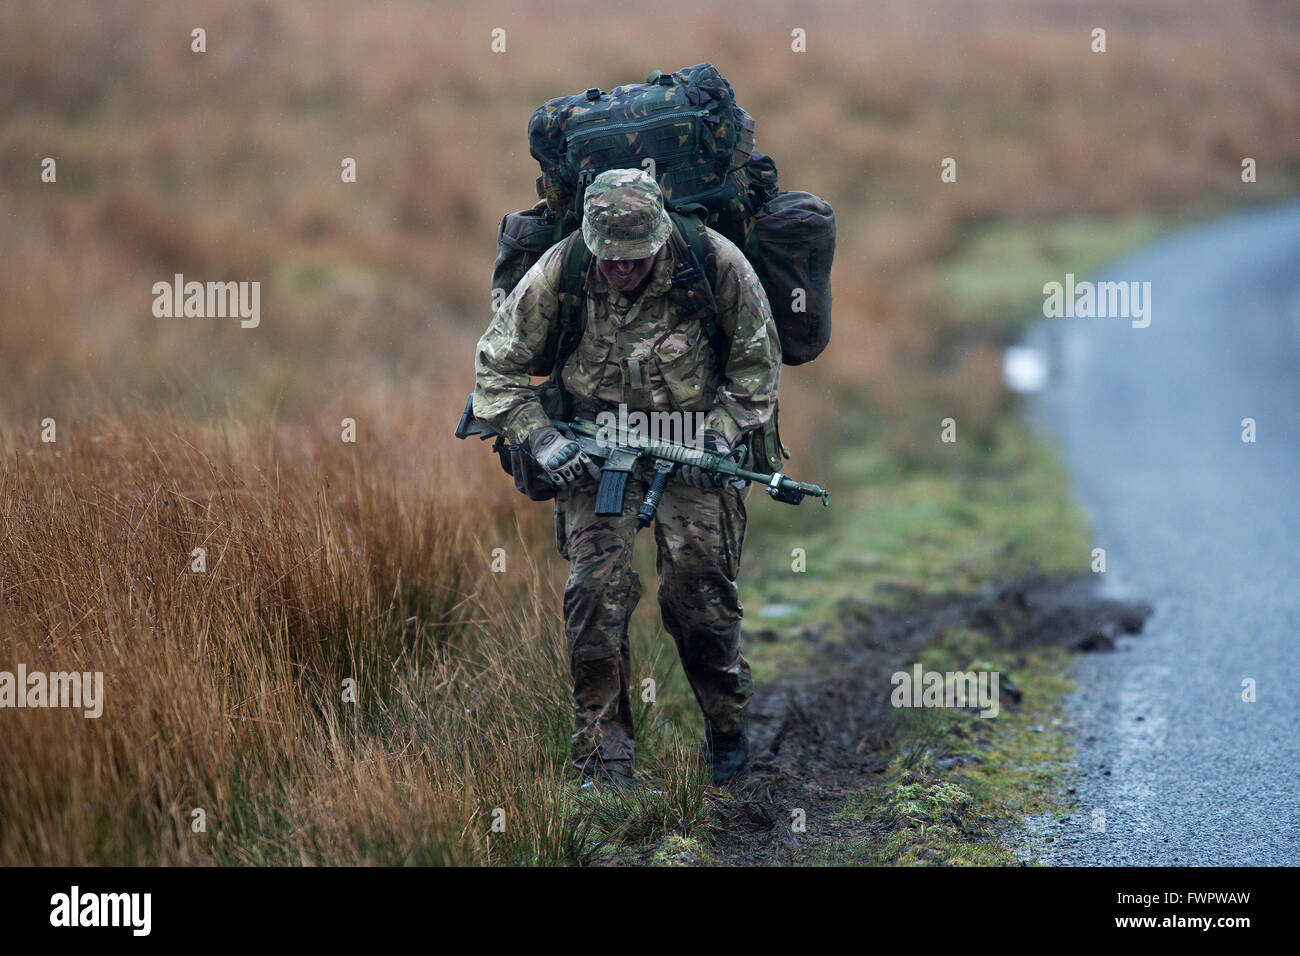 British Army soldiers train in a exercise on the moors in Scotland. - Stock Image